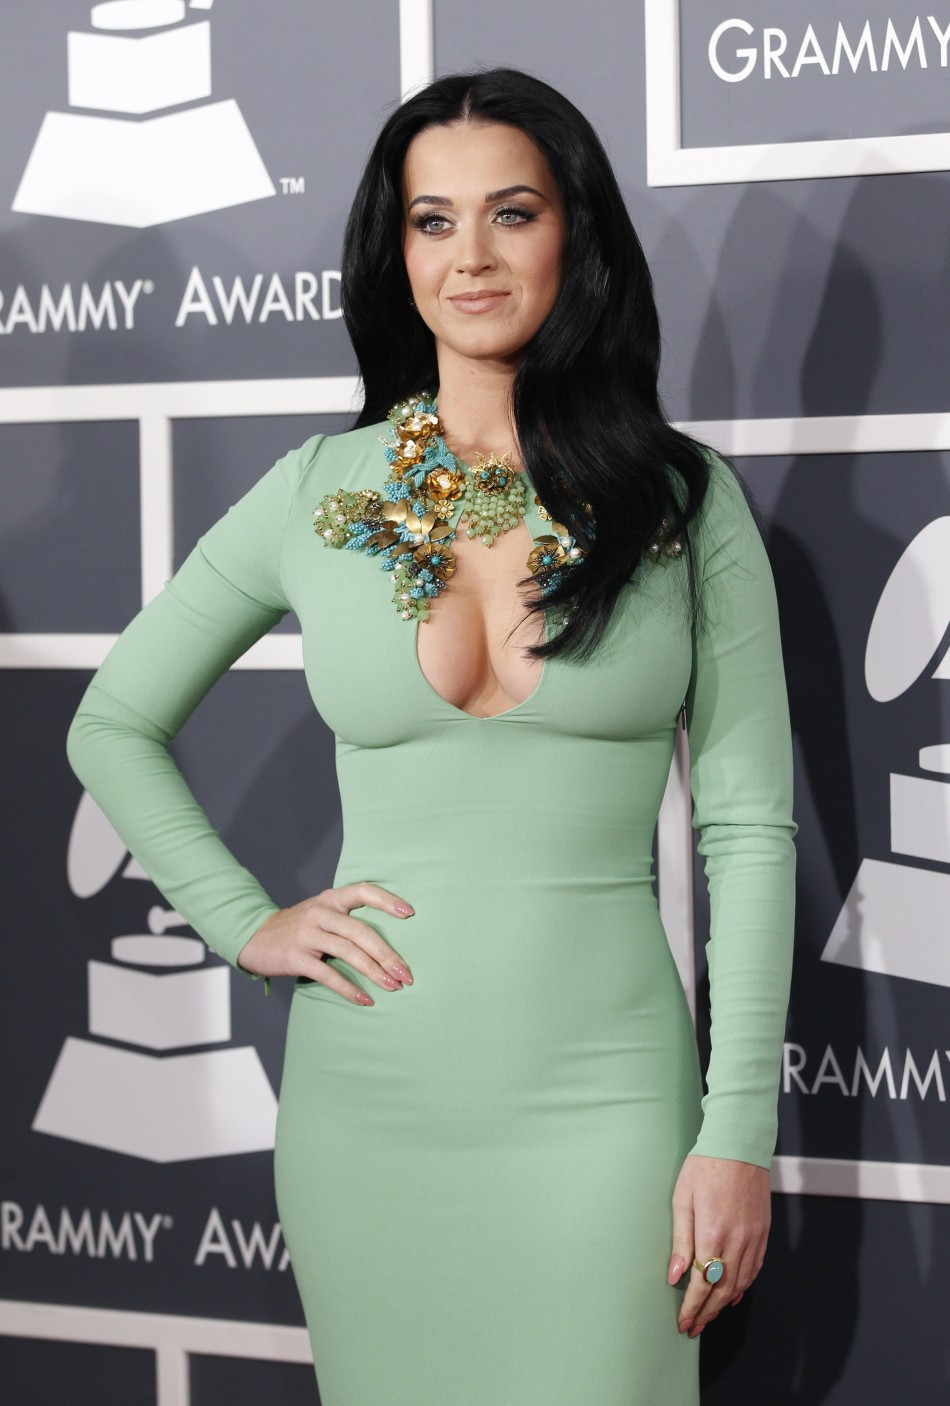 Sexy Katy Perry. Katy Perry Hot